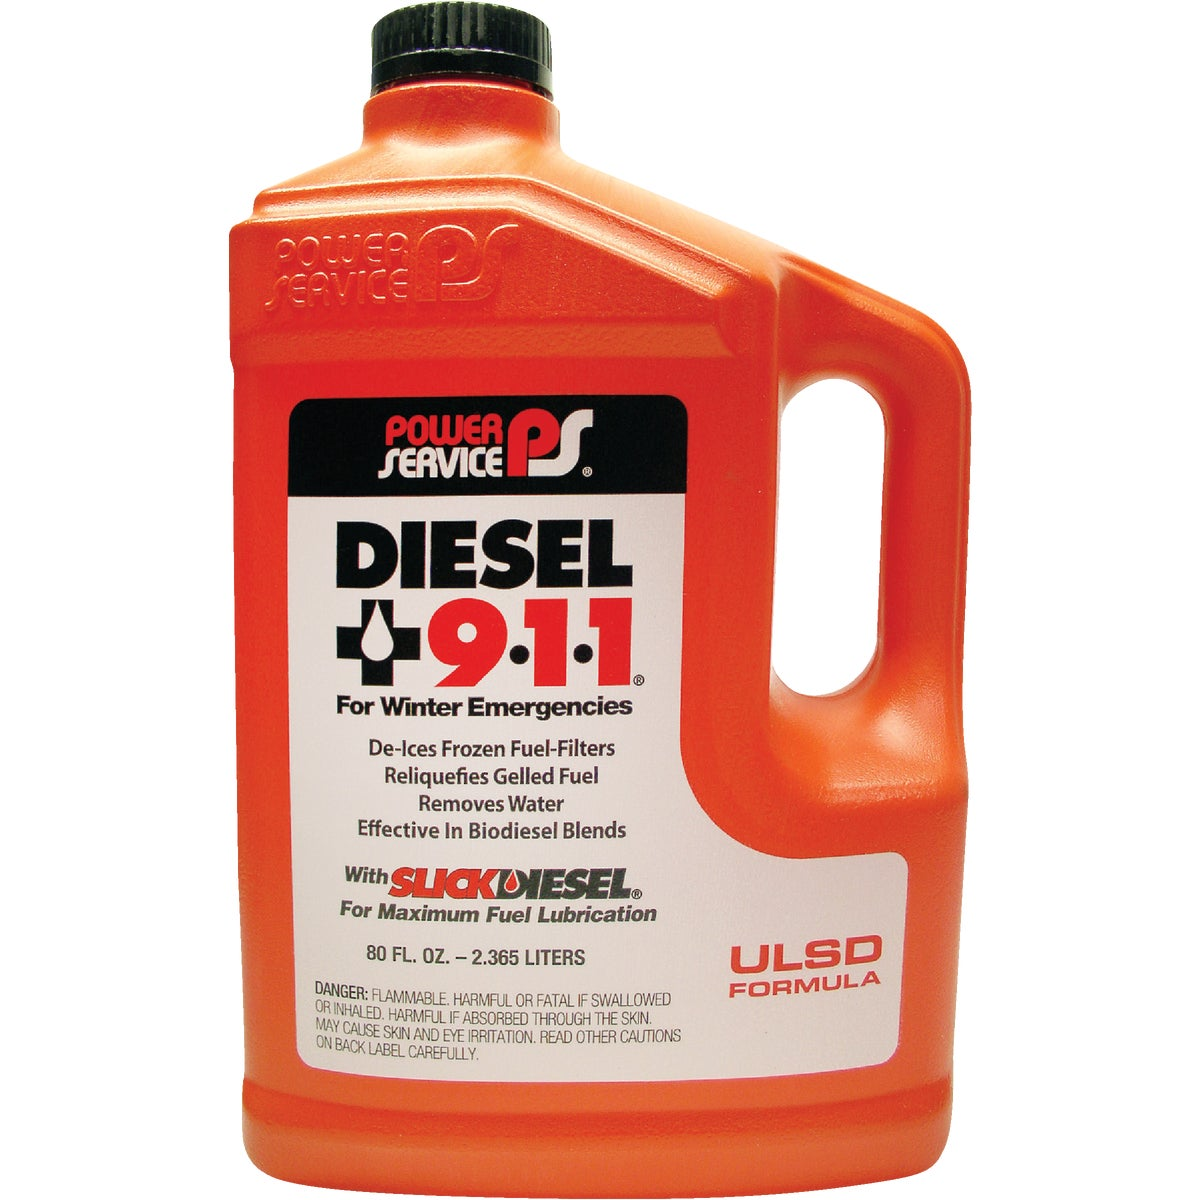 80OZ DIESEL 911 - PSLL8080 by Twinco Romax